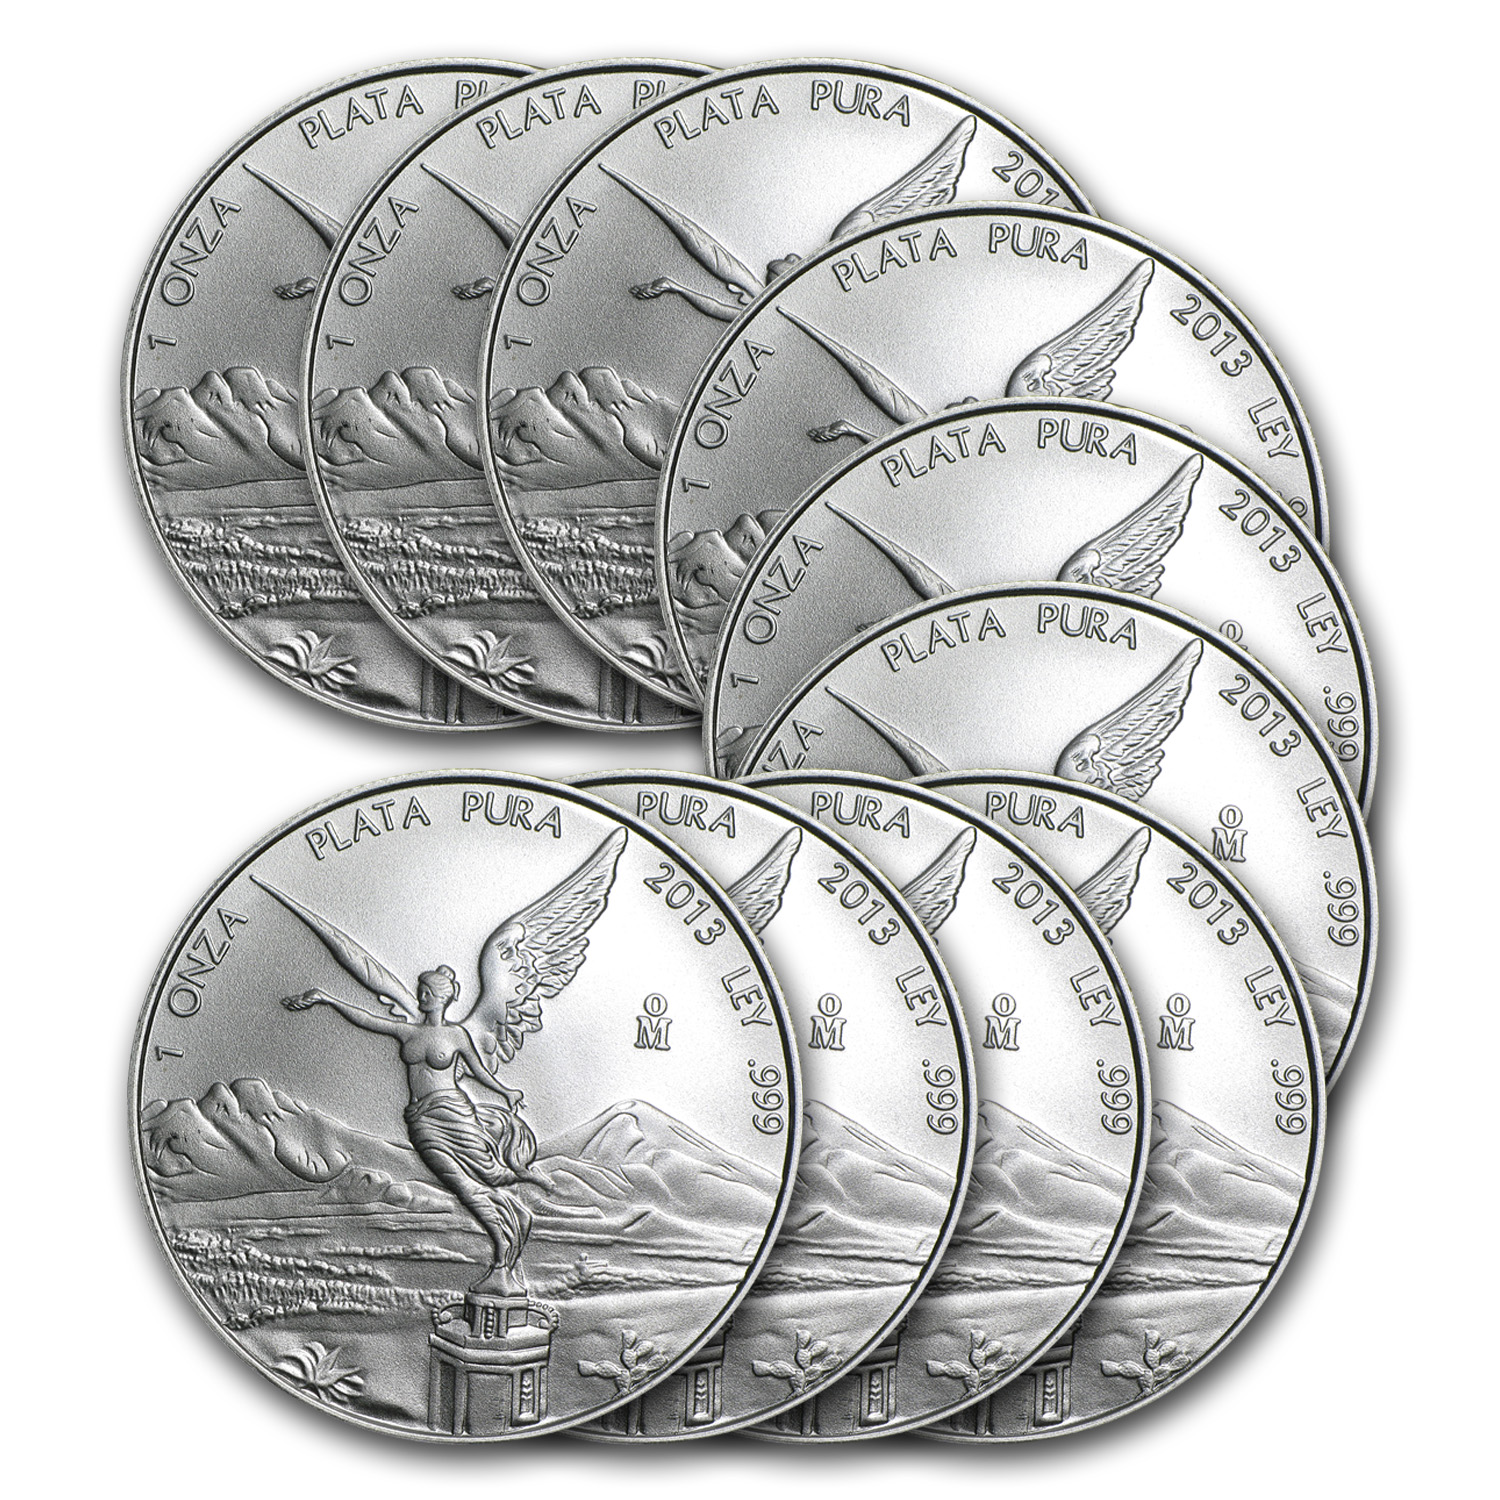 2013 Mexico 1 oz Silver Libertad (Lot of 10)